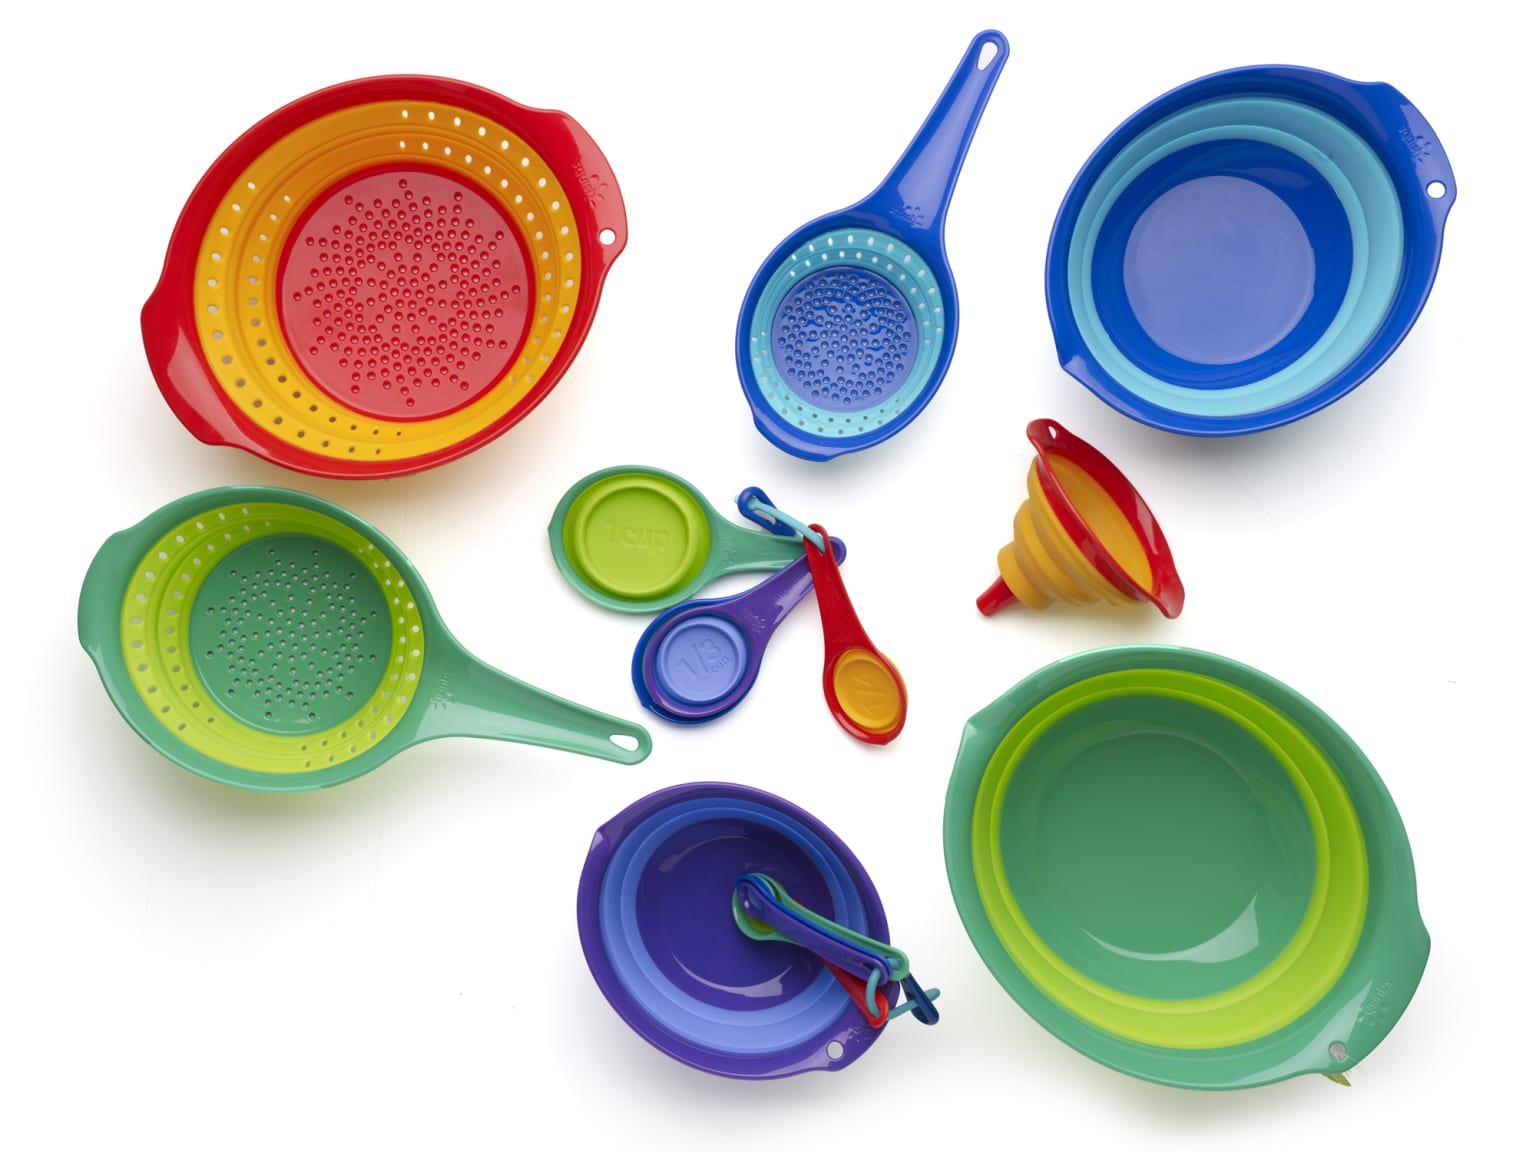 Squish Collapsible Kitchen Goods